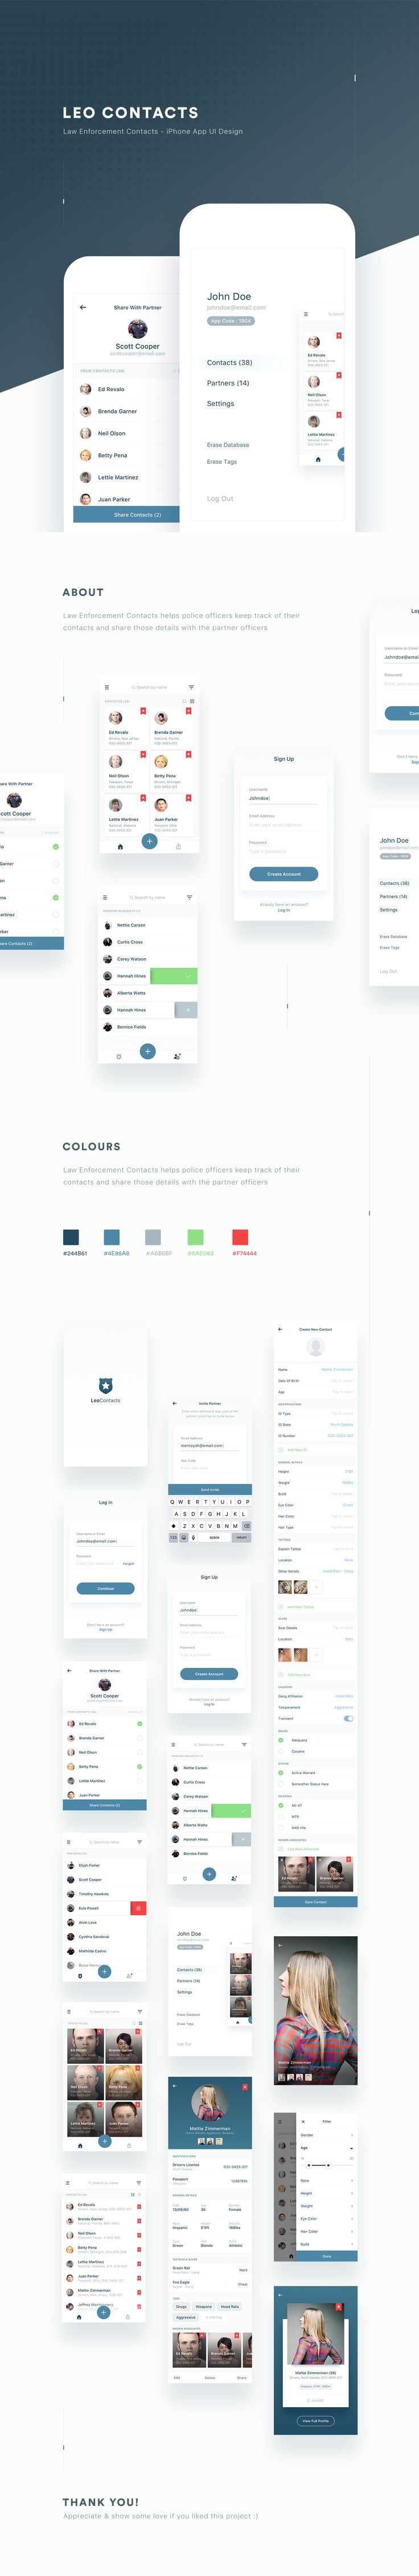 """Check out this @Behance project: """"LEO Contacts App UI Design"""" https://www.behance.net/gallery/52684257/LEO-Contacts-App-UI-Design"""